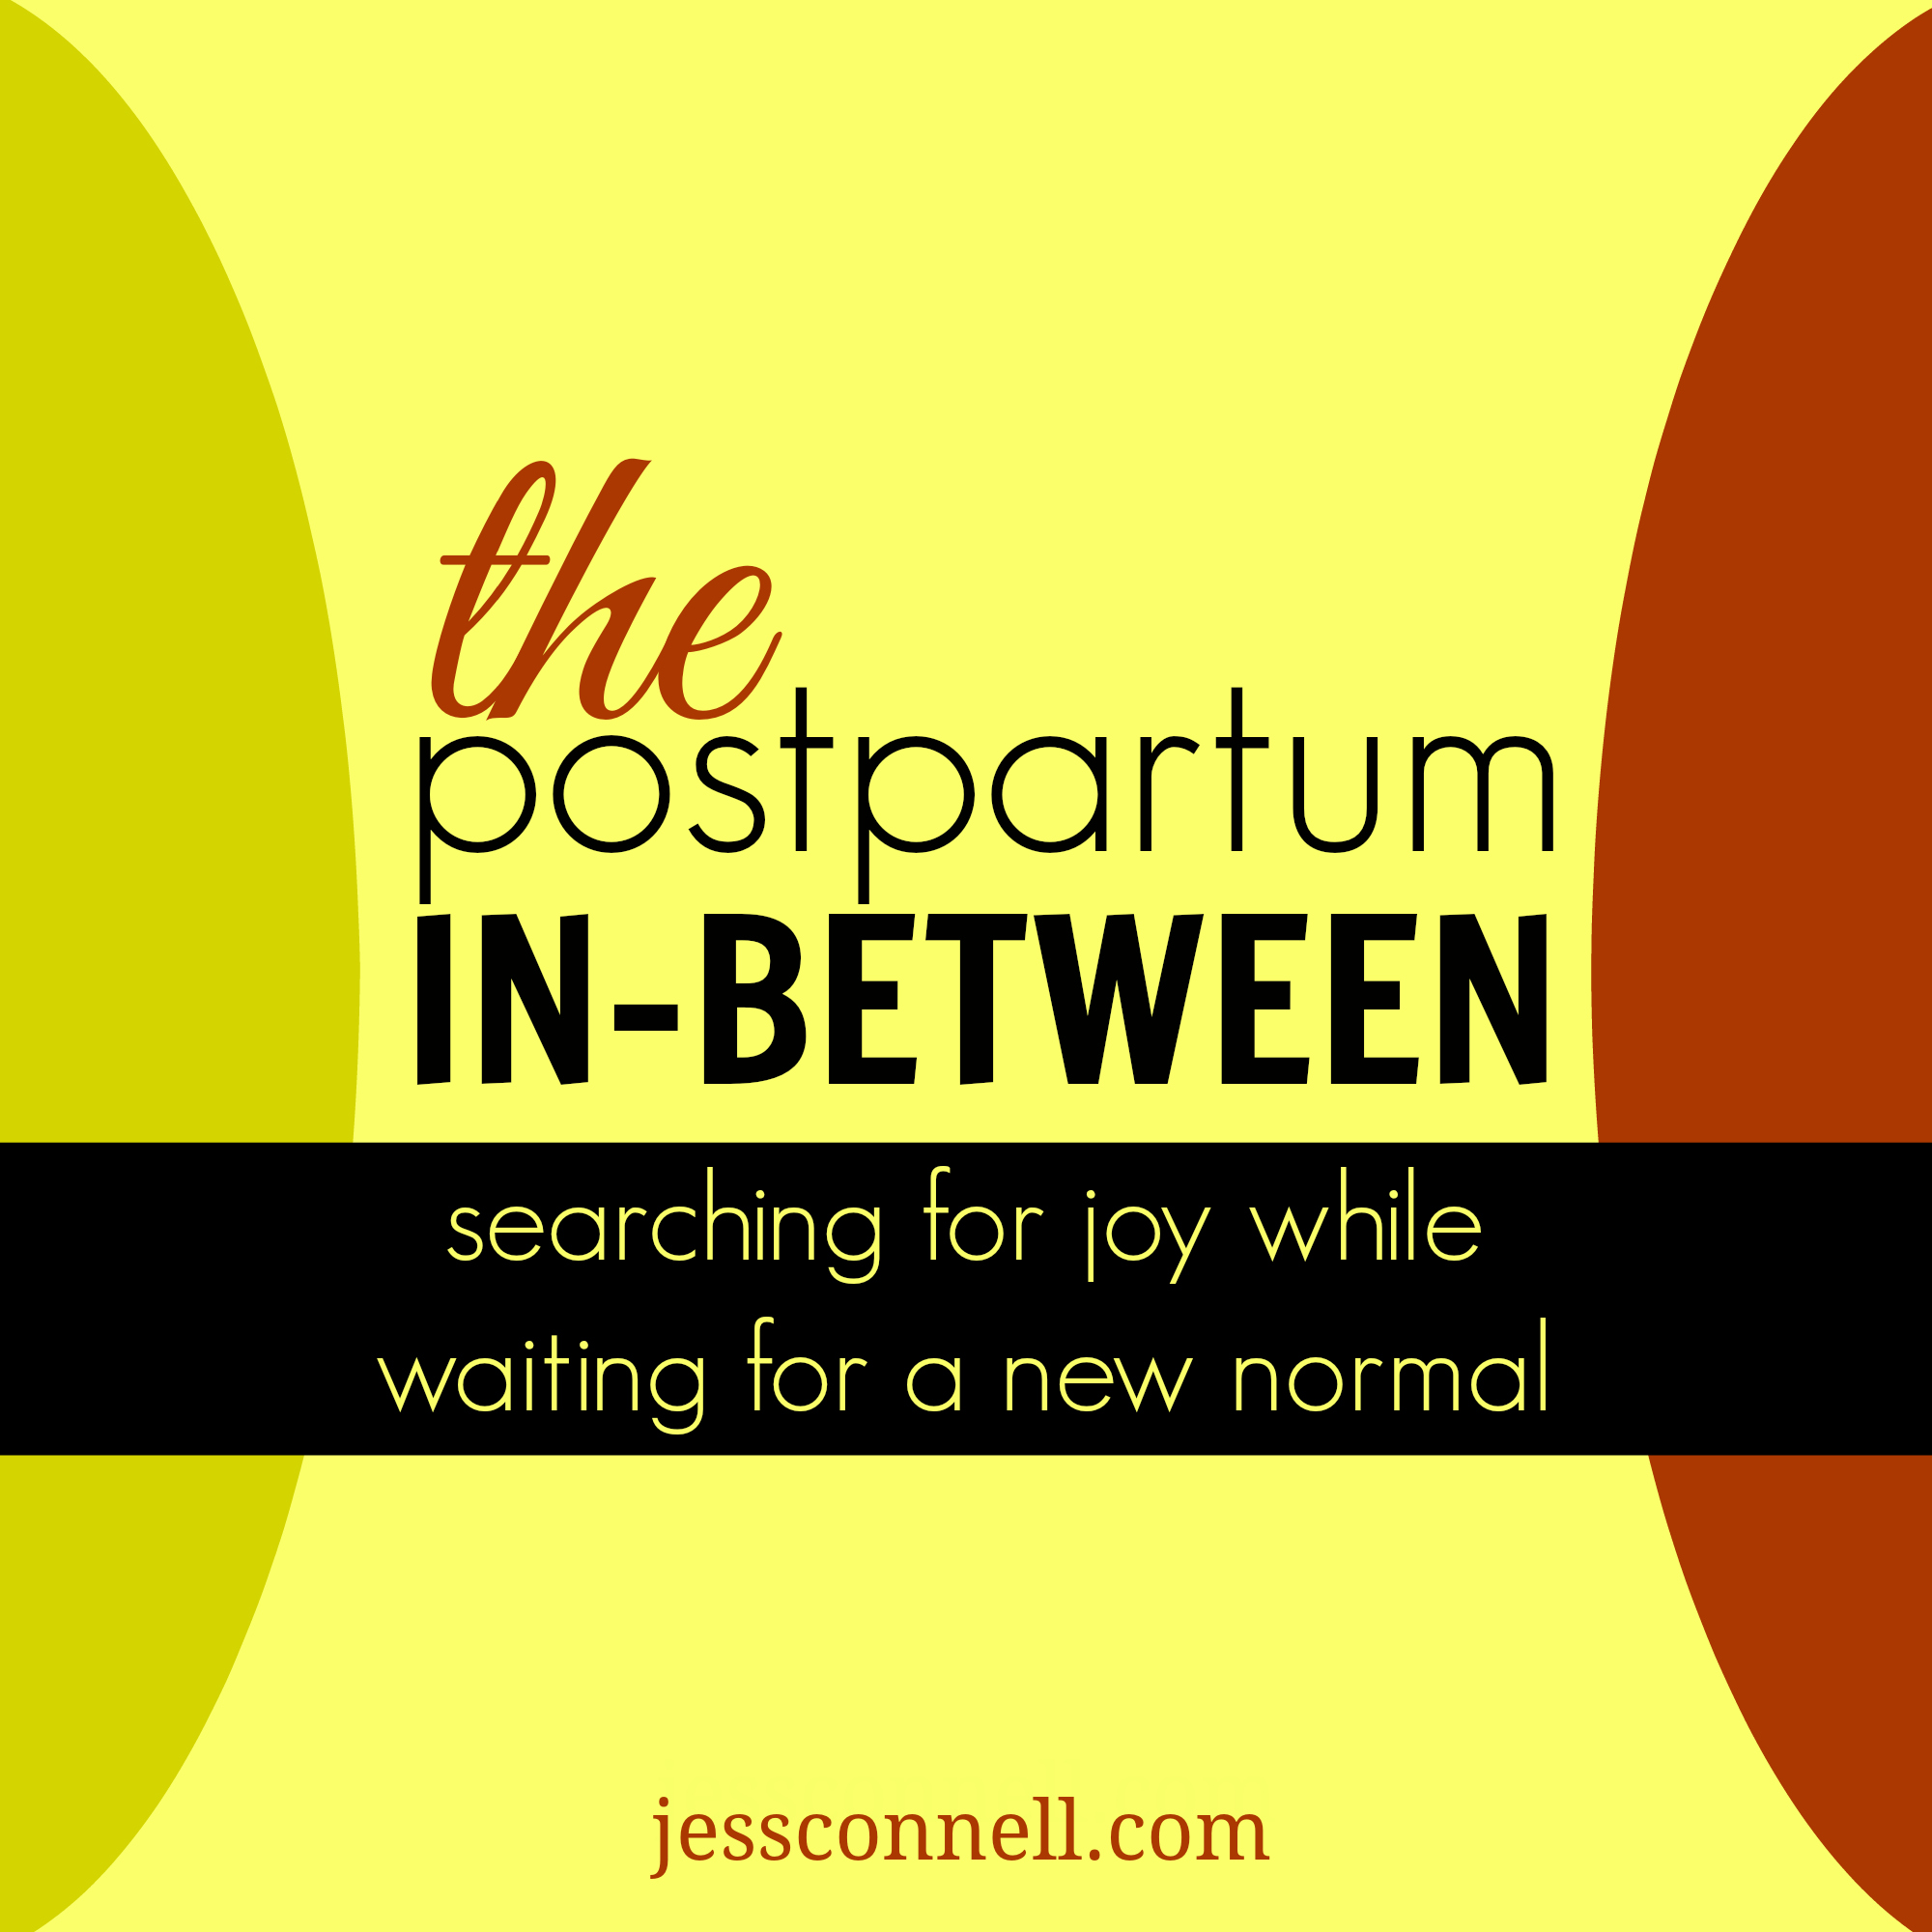 The Postpartum In-Between // jessconnell.com